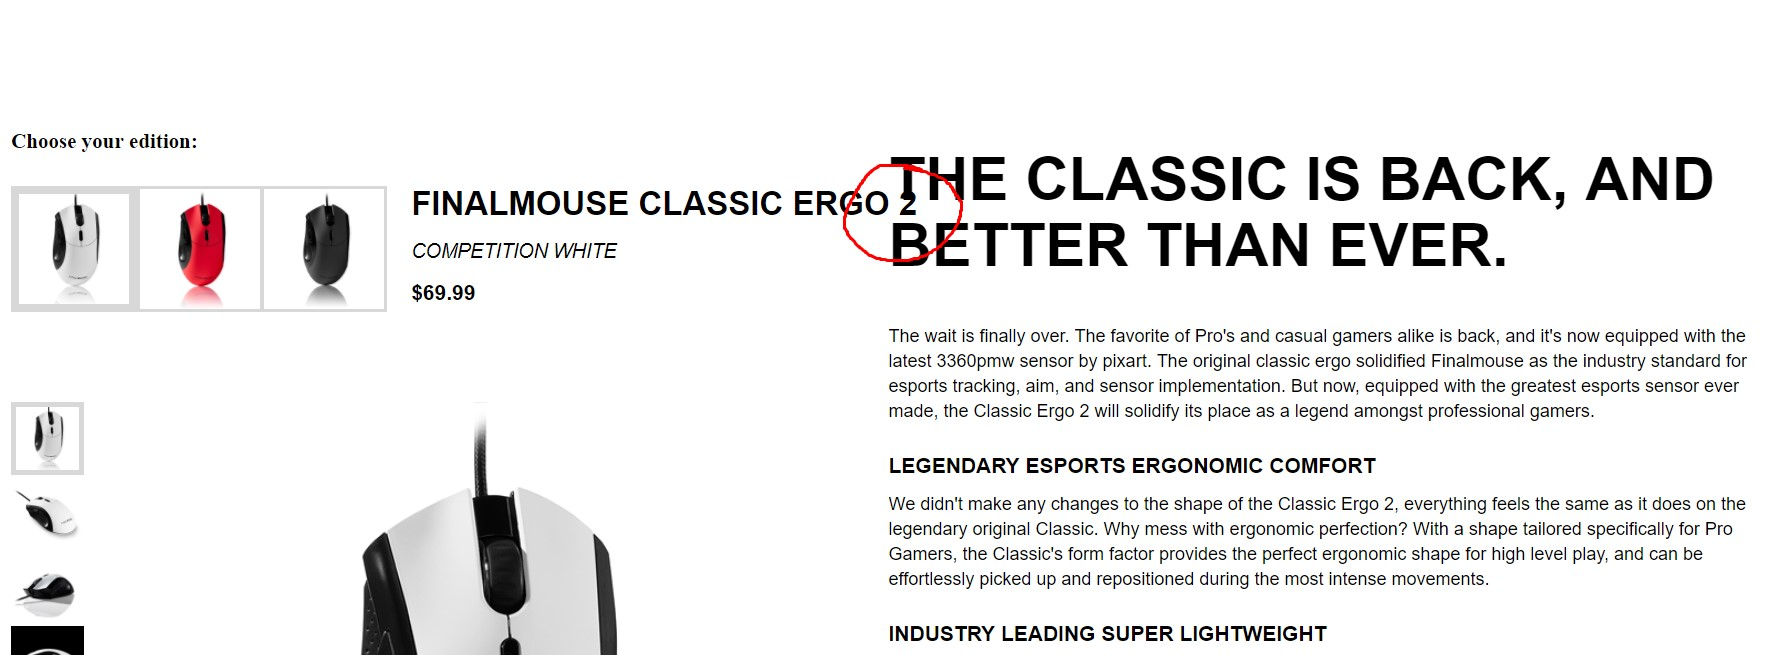 167c4aee961 I hope they wont place mouse buttons so badly as they placed text on their  own site.